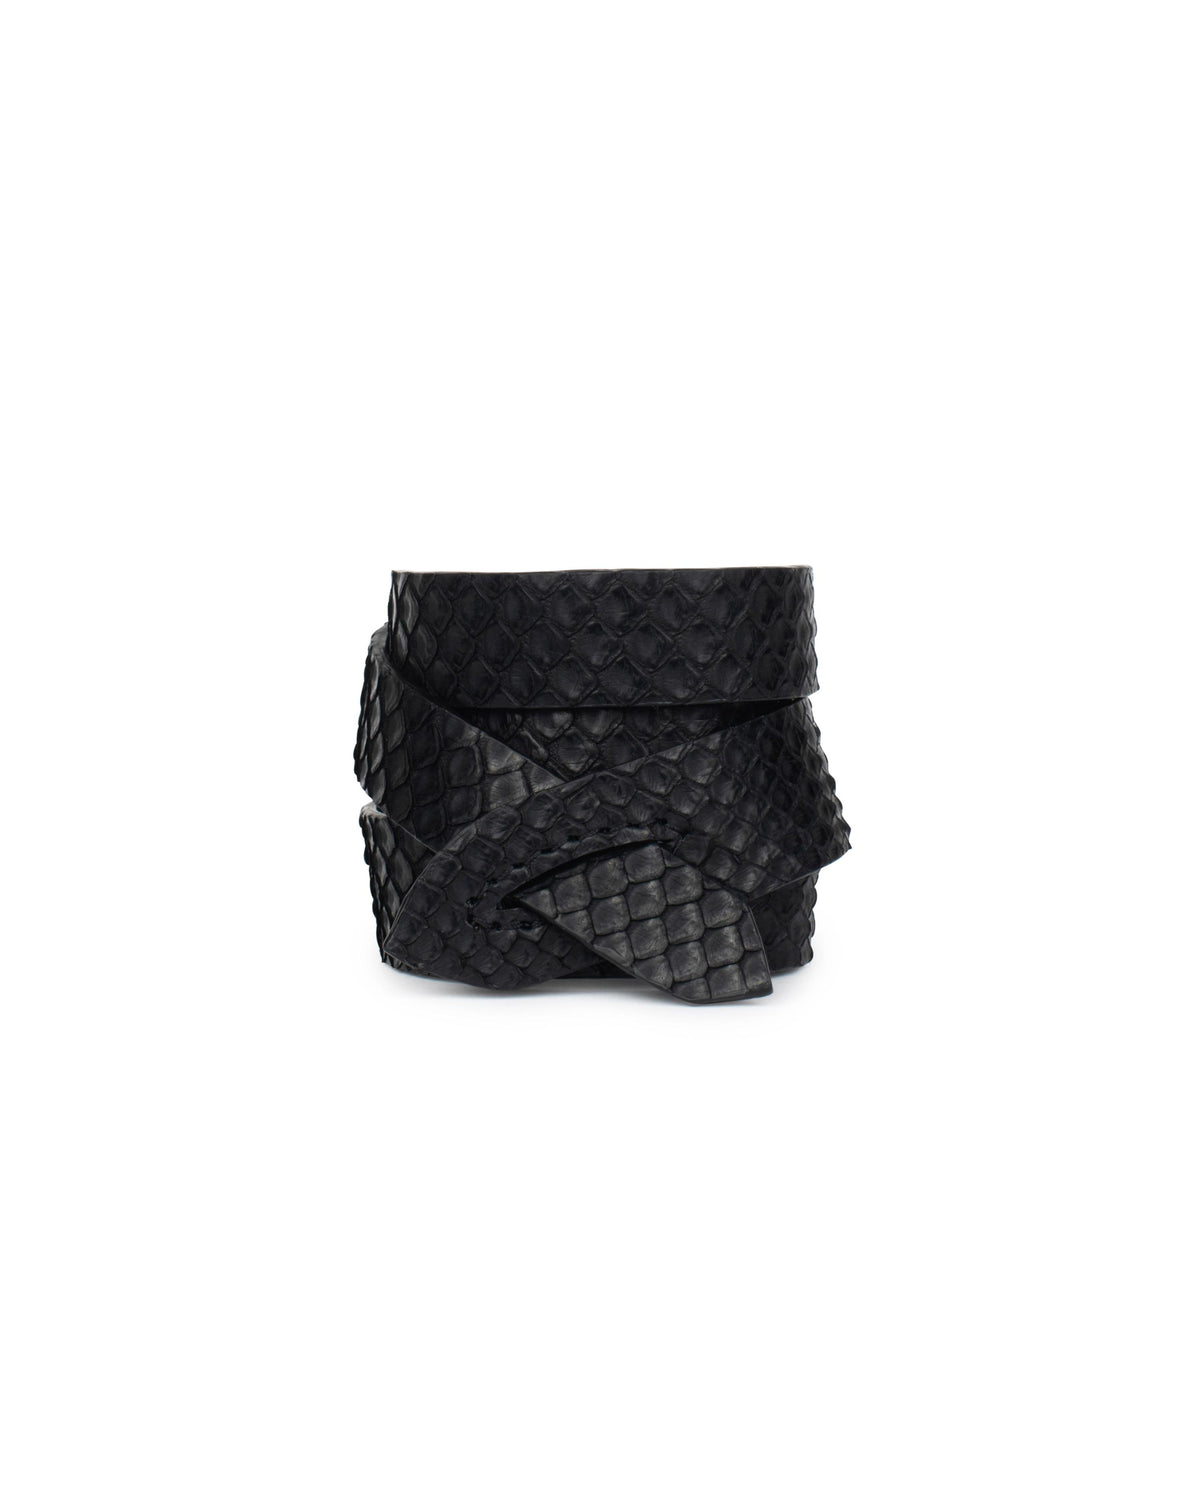 GIRONA WRIST WRAP in Black Embossed Python